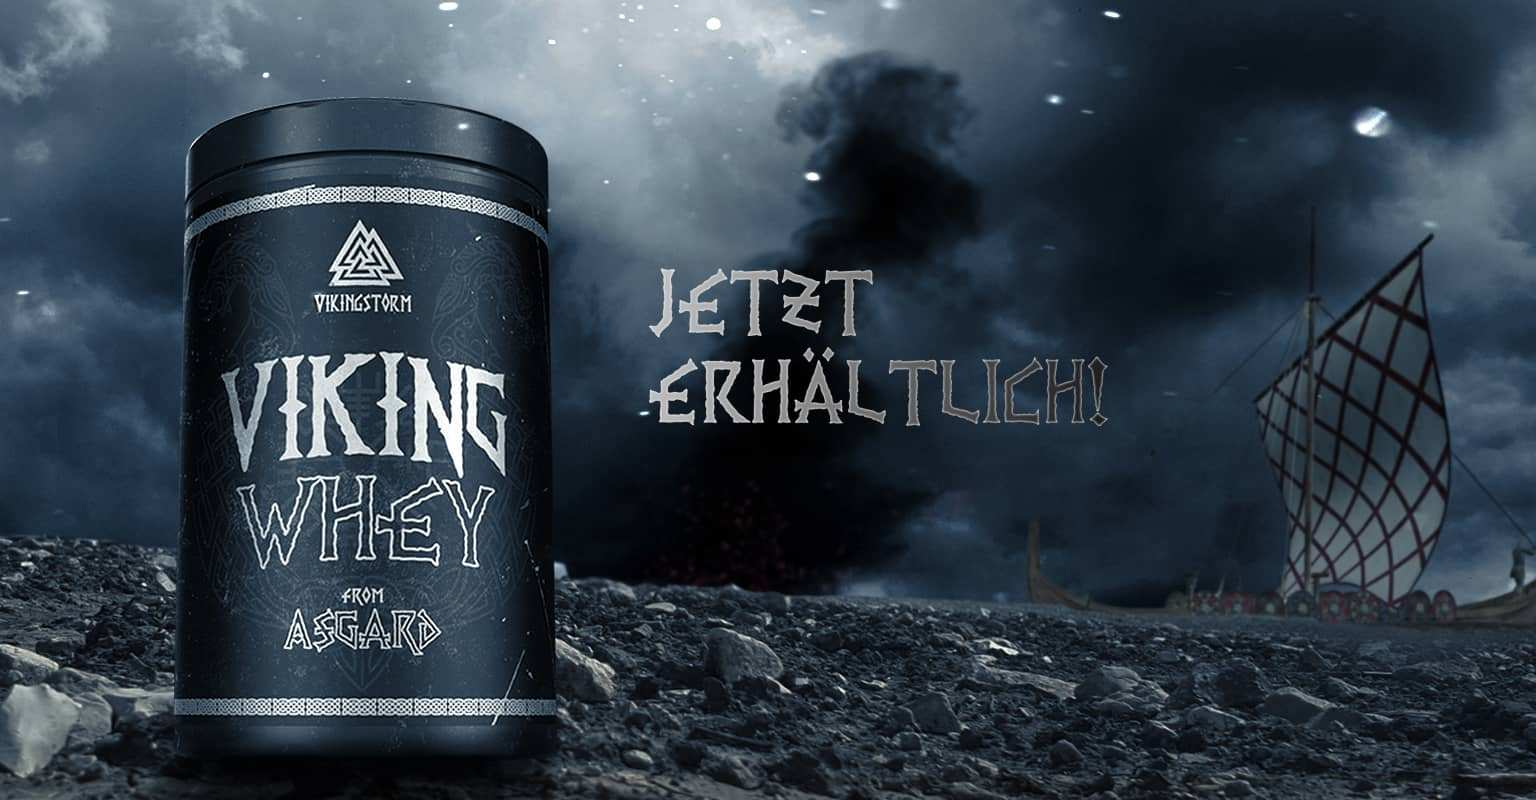 Viking Whey